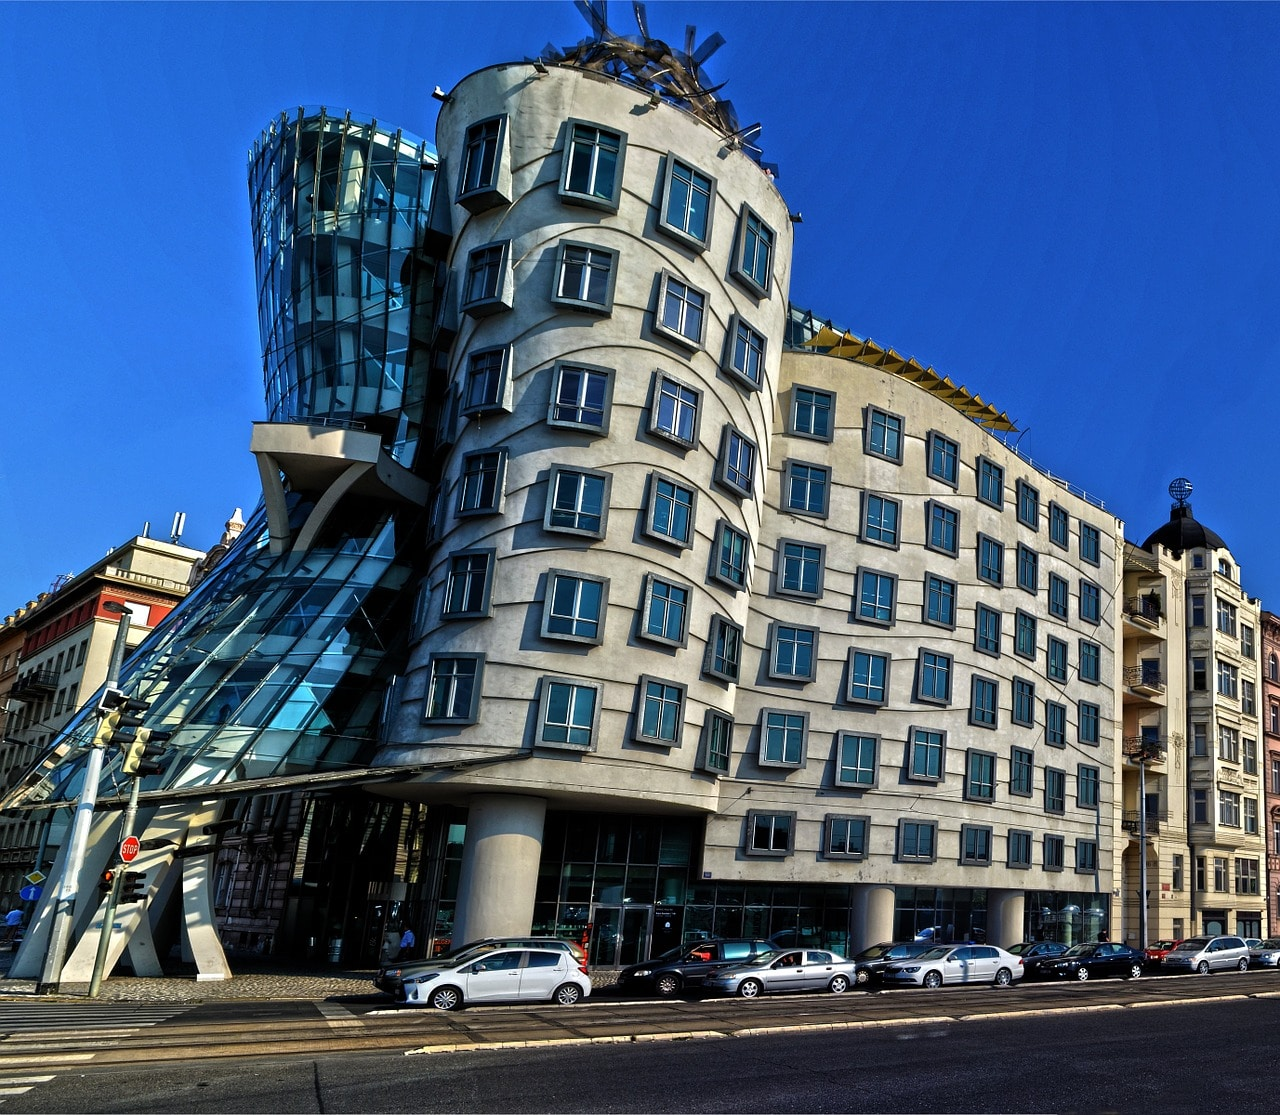 8 Outstanding Outdoor Places to Drink in Prague, Czech Republic, Czechia | Prague beer gardens and rooftop bars with great views. Dancing House, Glass Bar